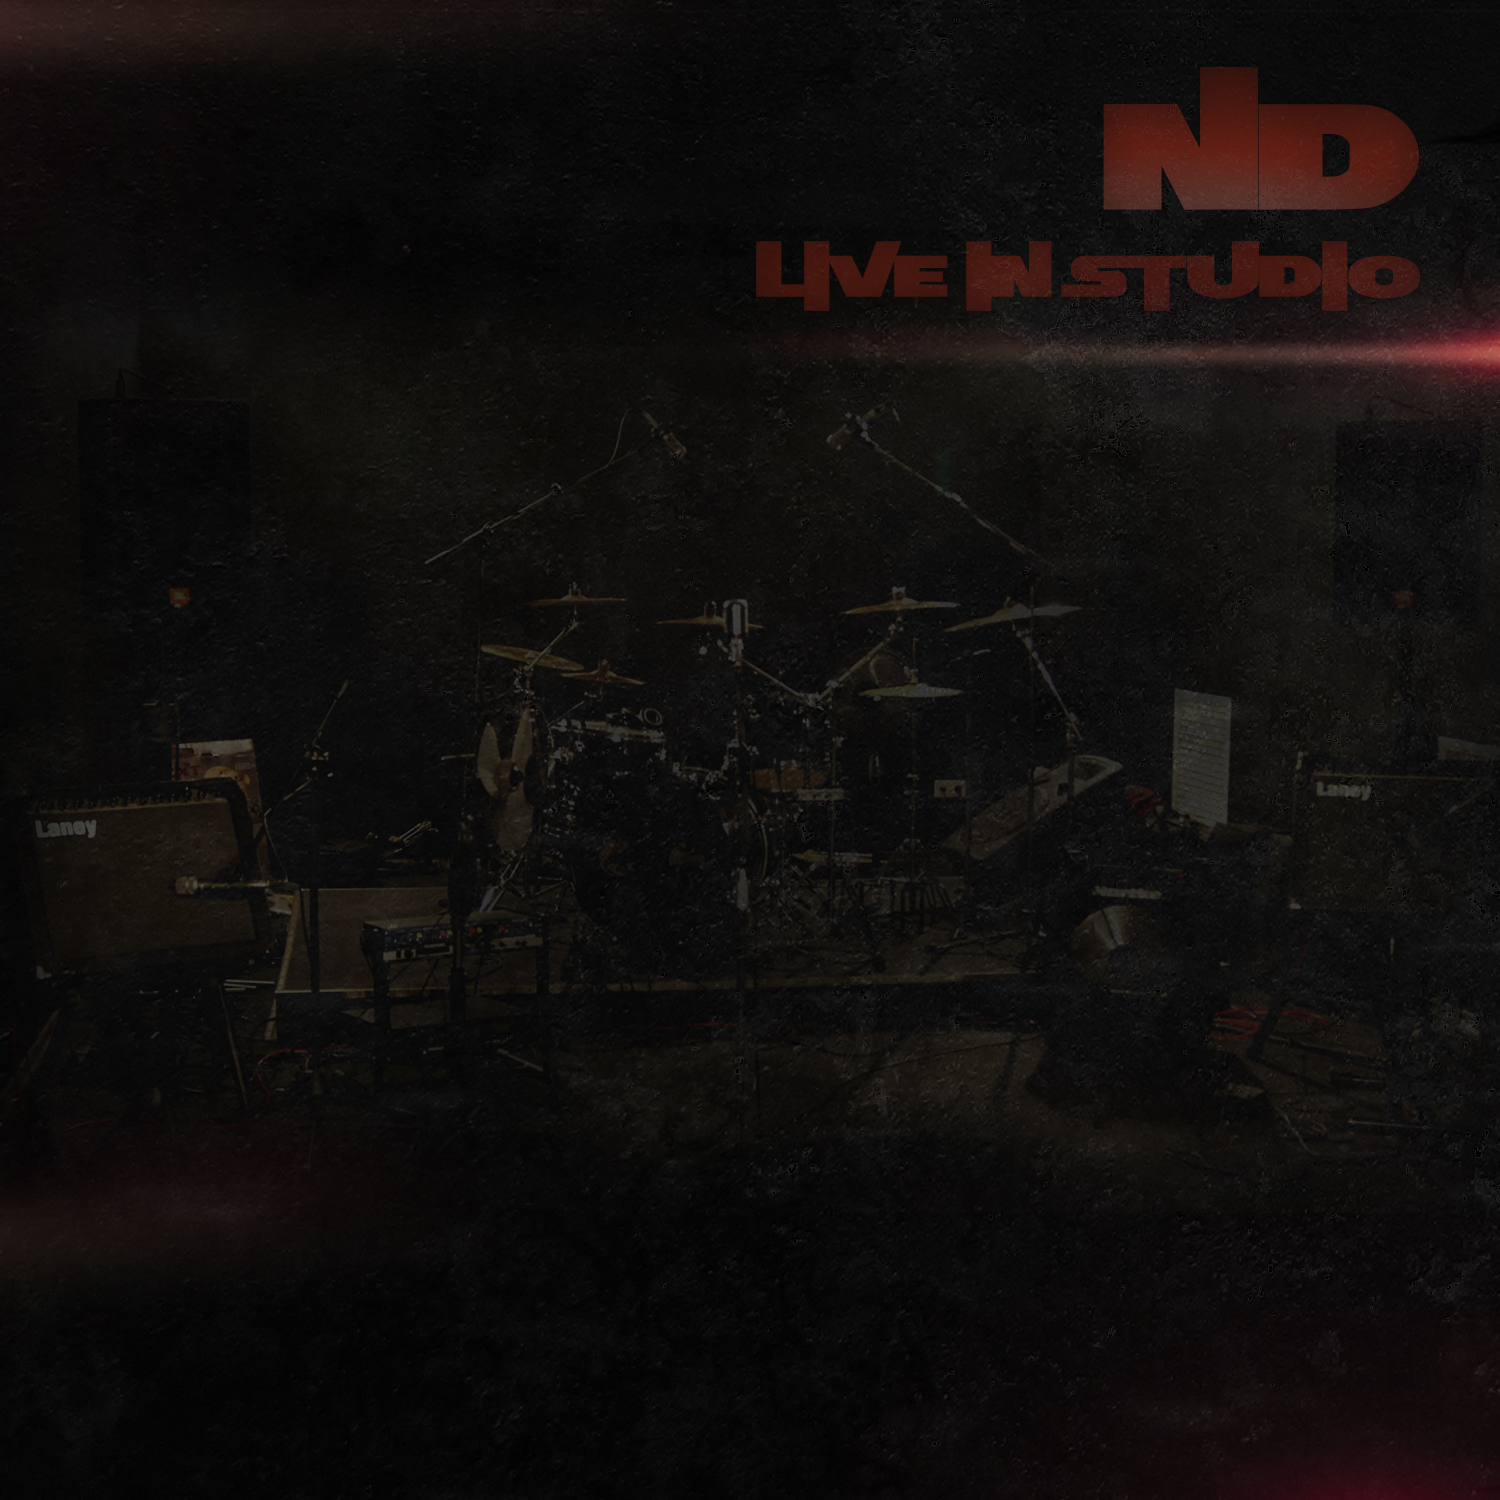 ND - «Live in Studio» (c) 2017